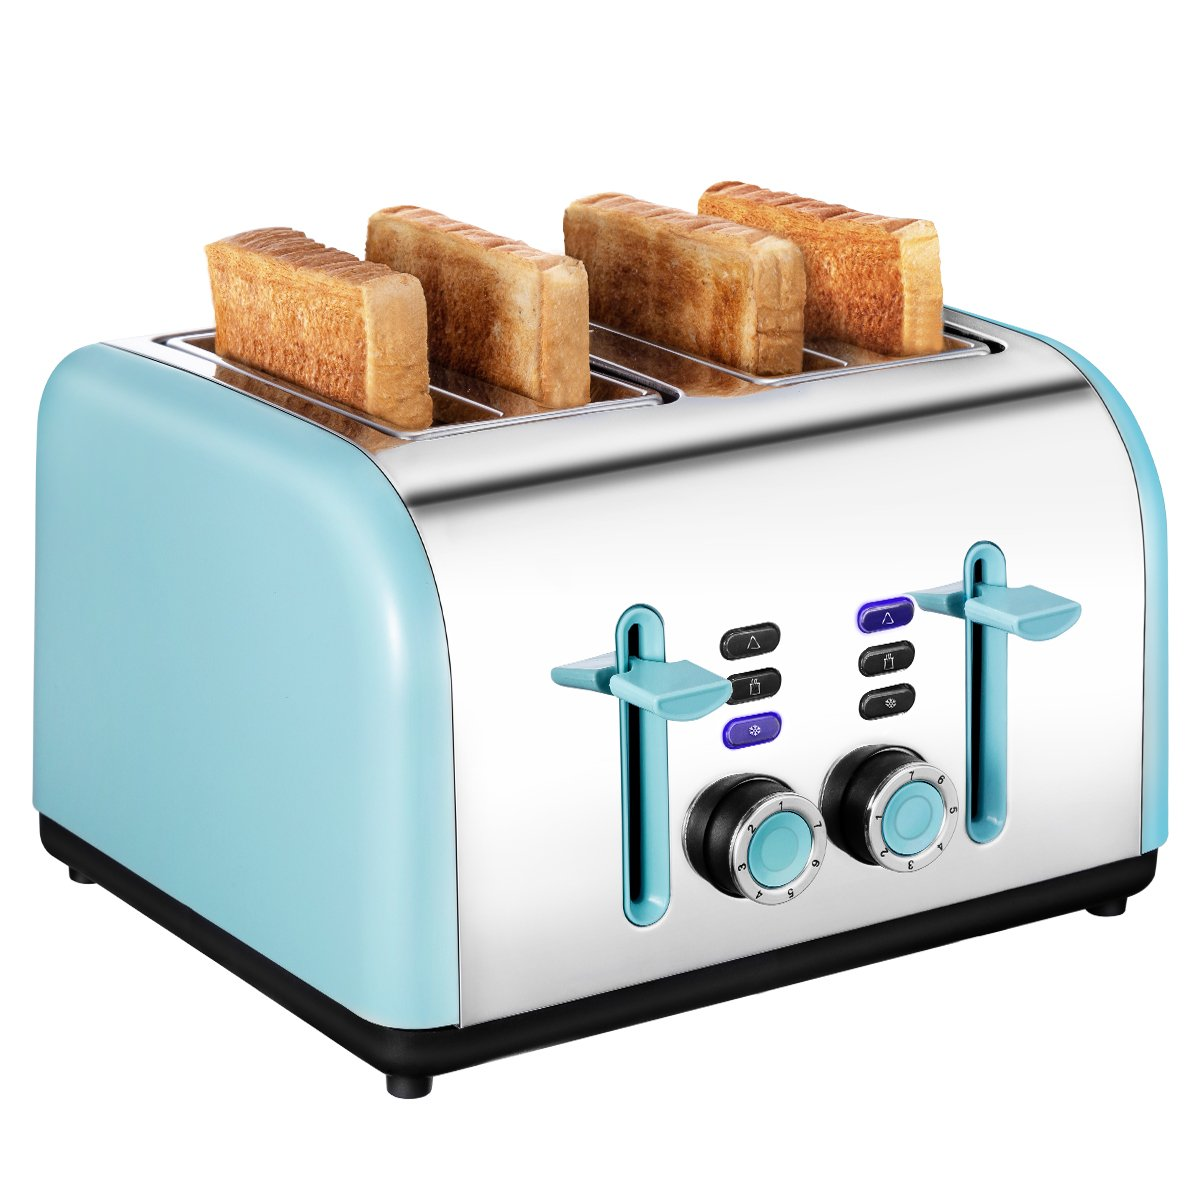 Toaster 4 Slice Wide Slot, Kitchen Toaster Stainless Steel Compact, Sleek Bread Toaster Best Rated with Quick Defrost Reheat Cancel Button by KEEMO